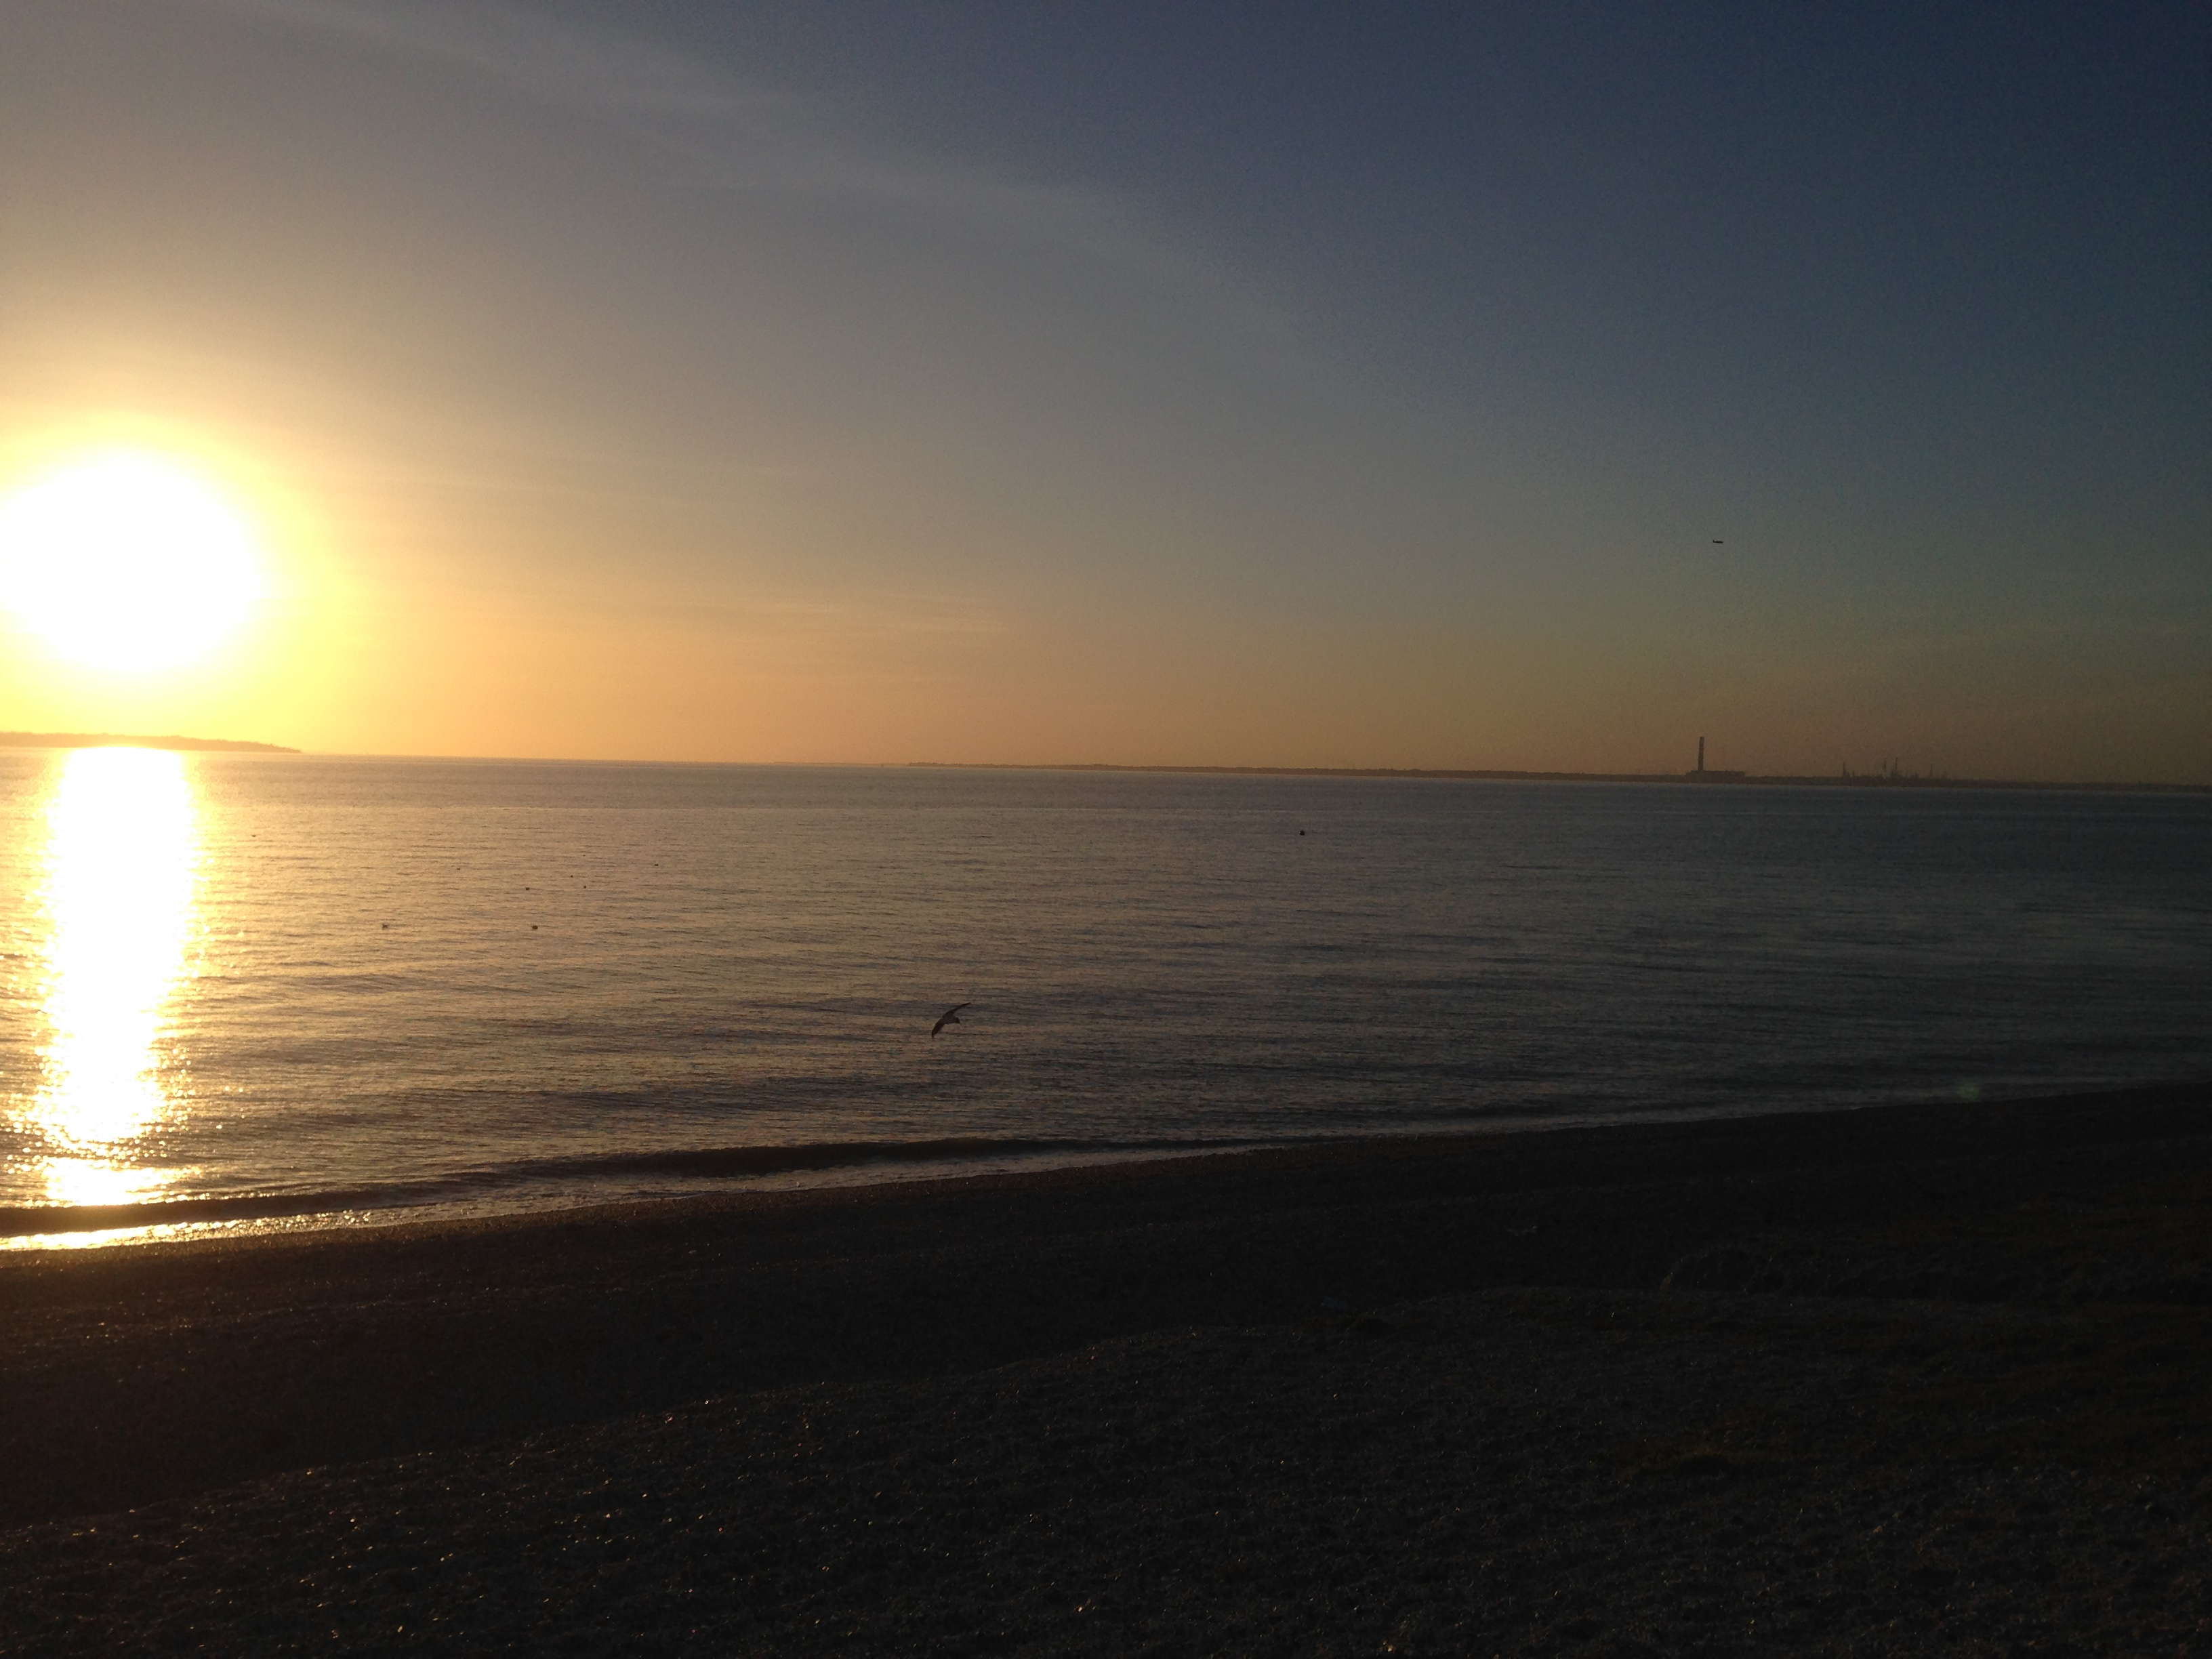 Lee on solent at sunset